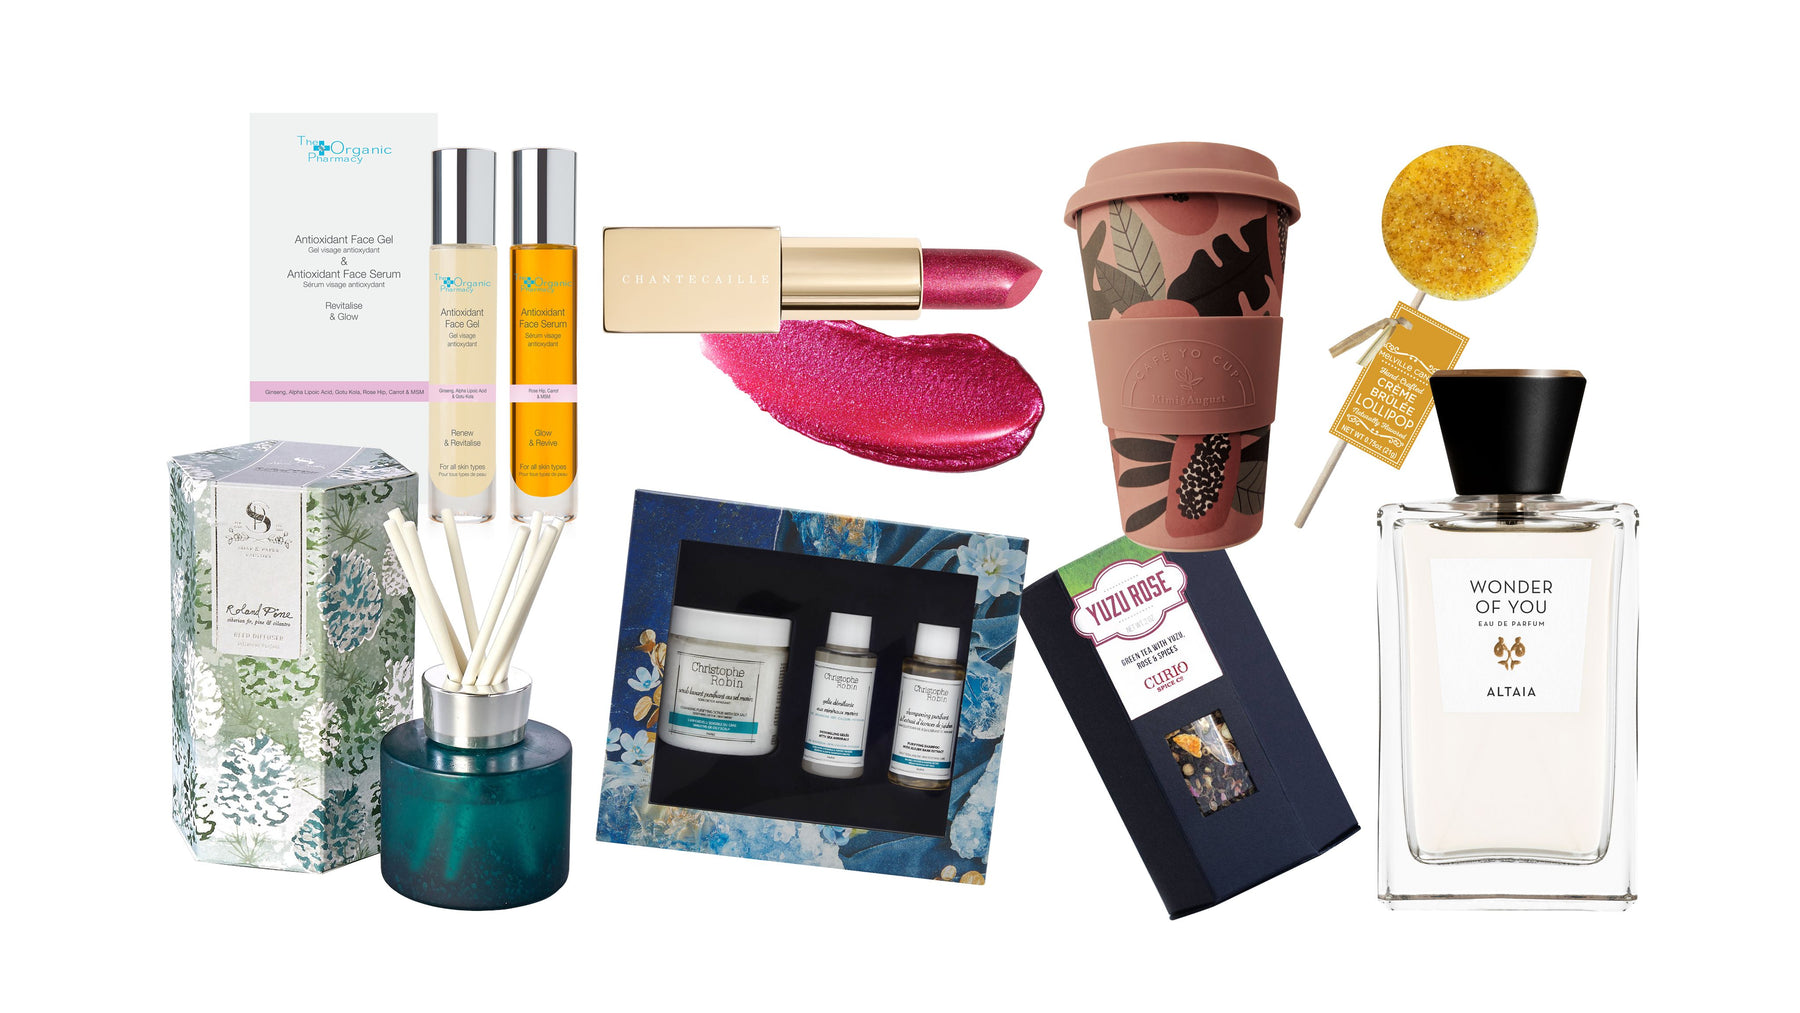 Gifts and Gift Sets from The Organic Pharmacy, Chantecaille, Mimi & August, Hand-Crafted Lollipops, The Soap & Paper Factory, Christophe Robin, Curio Spice Co. ALTAIA and more - SHOP NOW